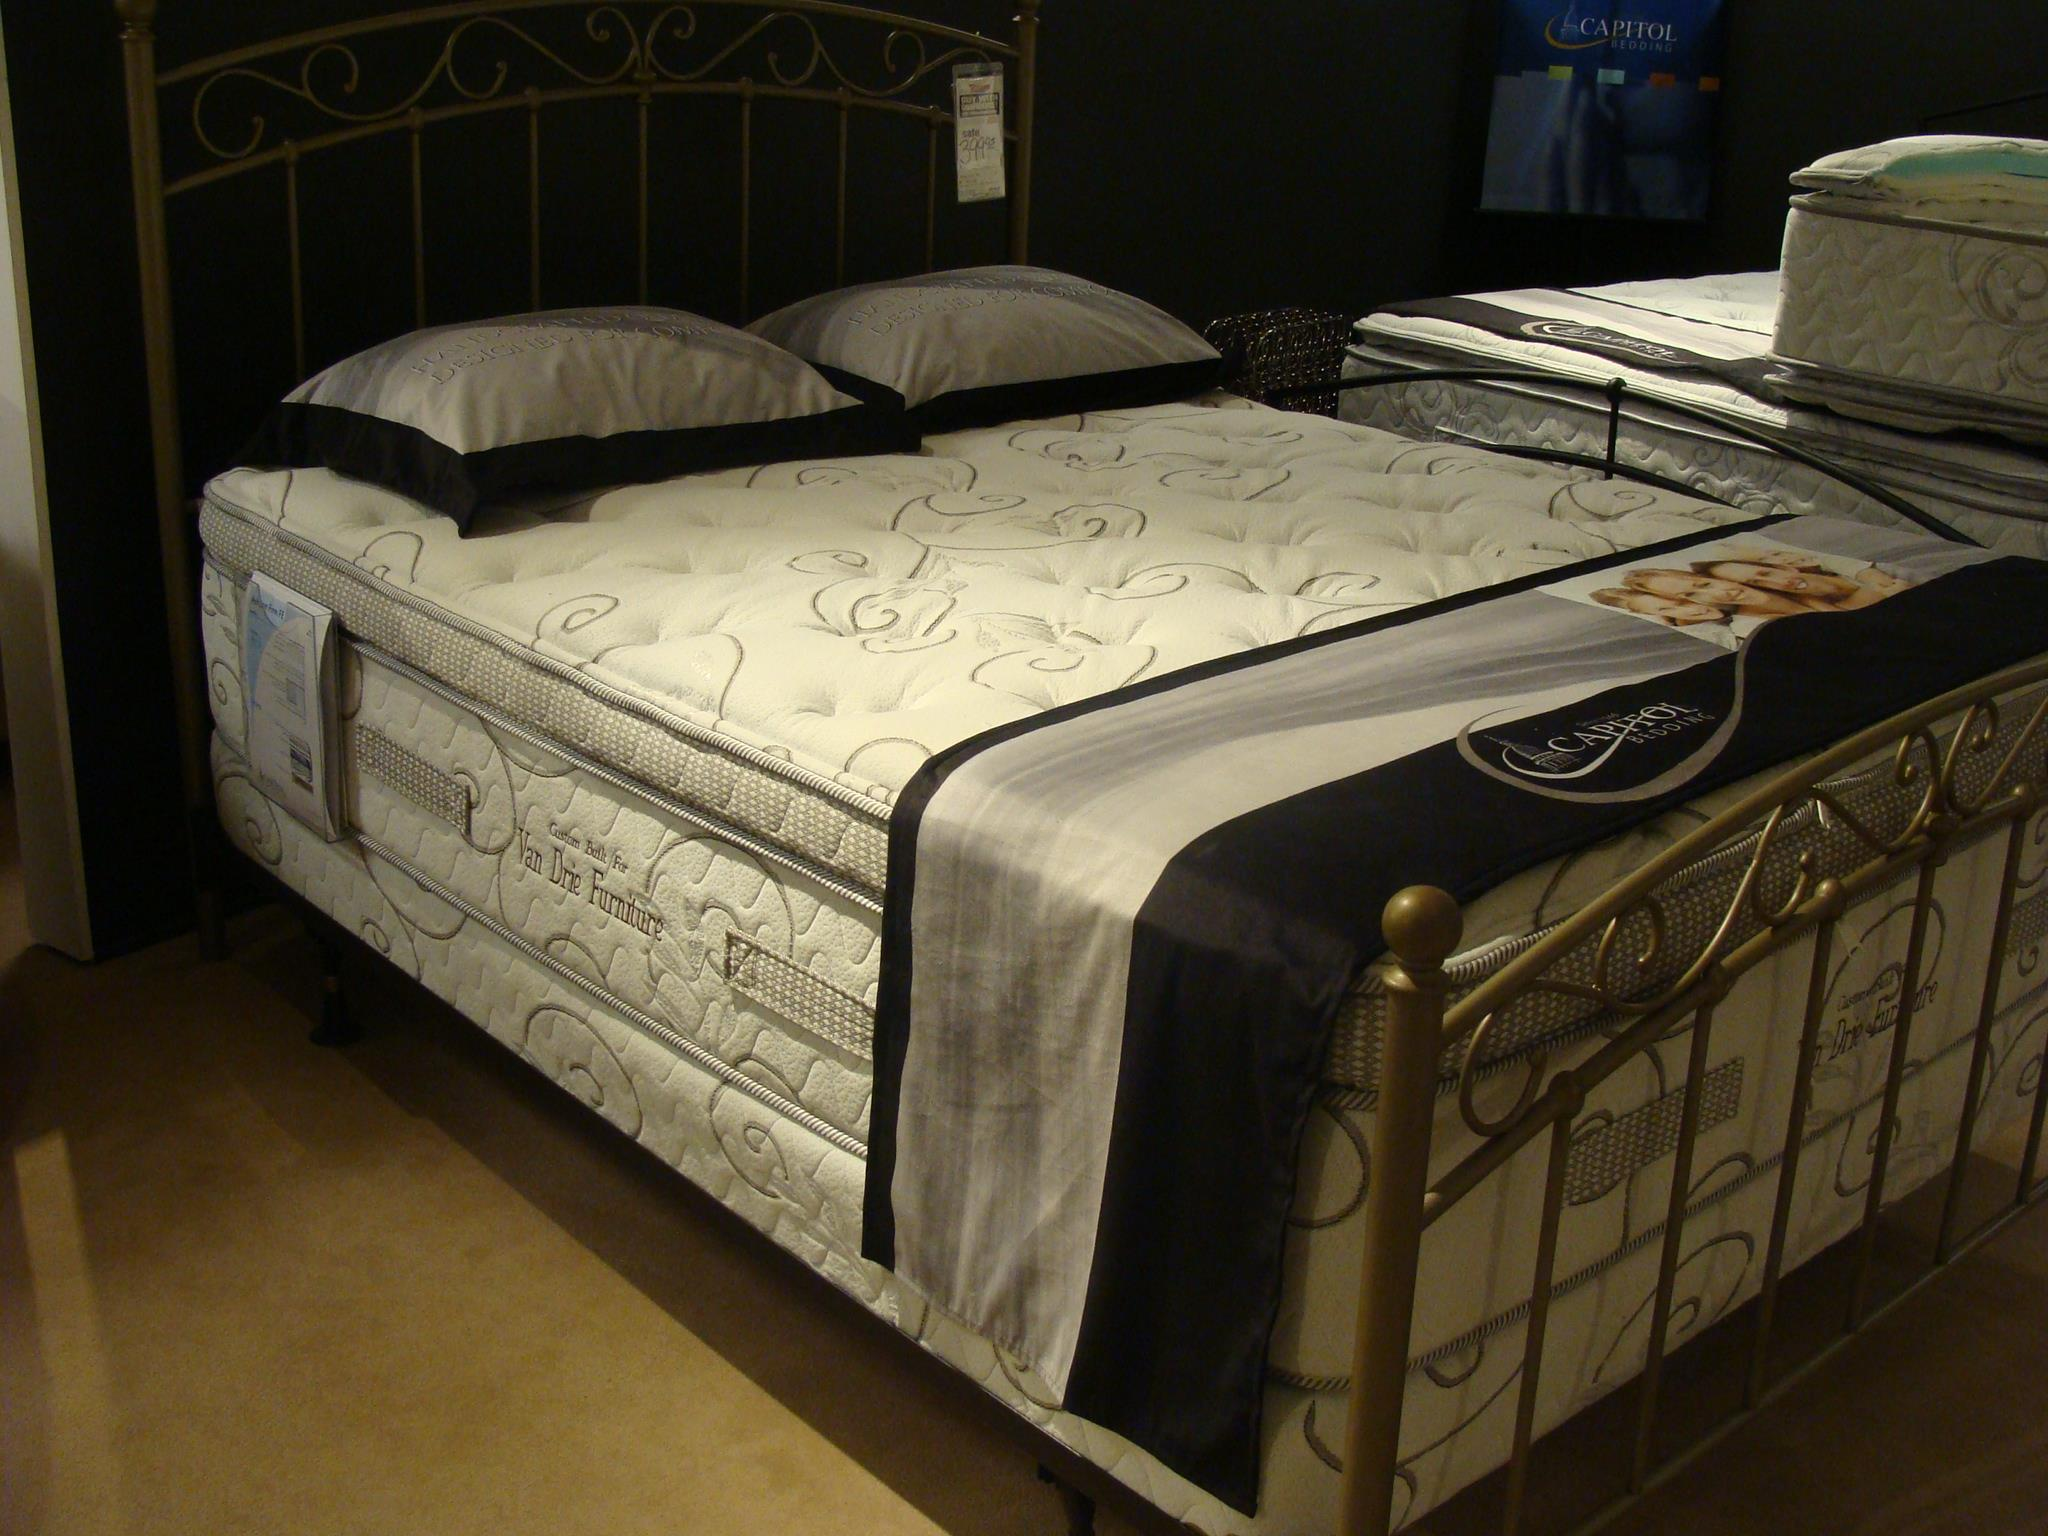 Capitol Bedding Grandeur Full Firm Mattress Only - Item Number: Firm-F